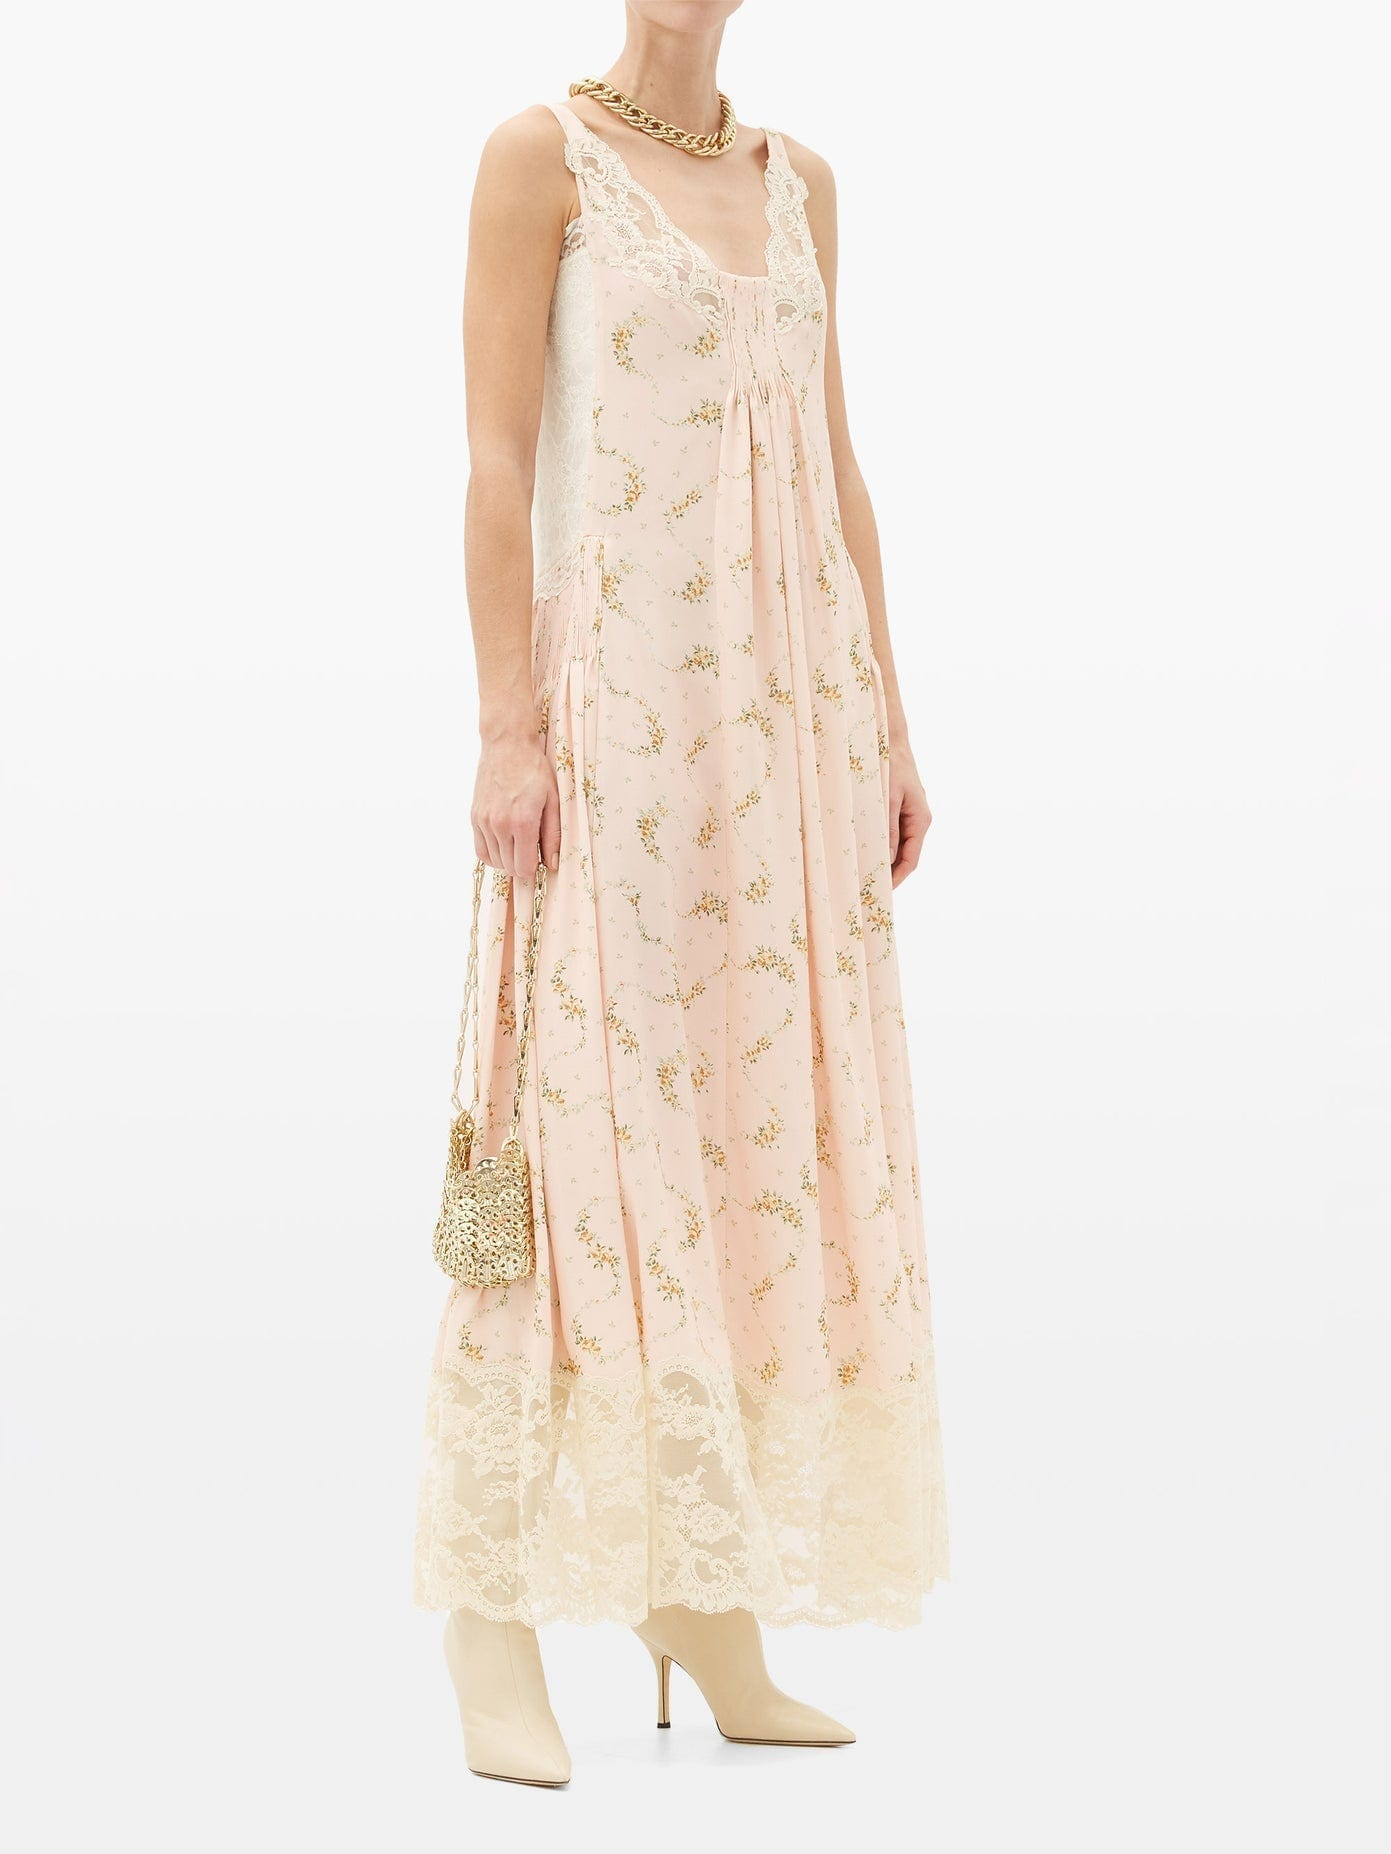 PACO RABANNE Lace-trimmed Floral-print Crepe Dress